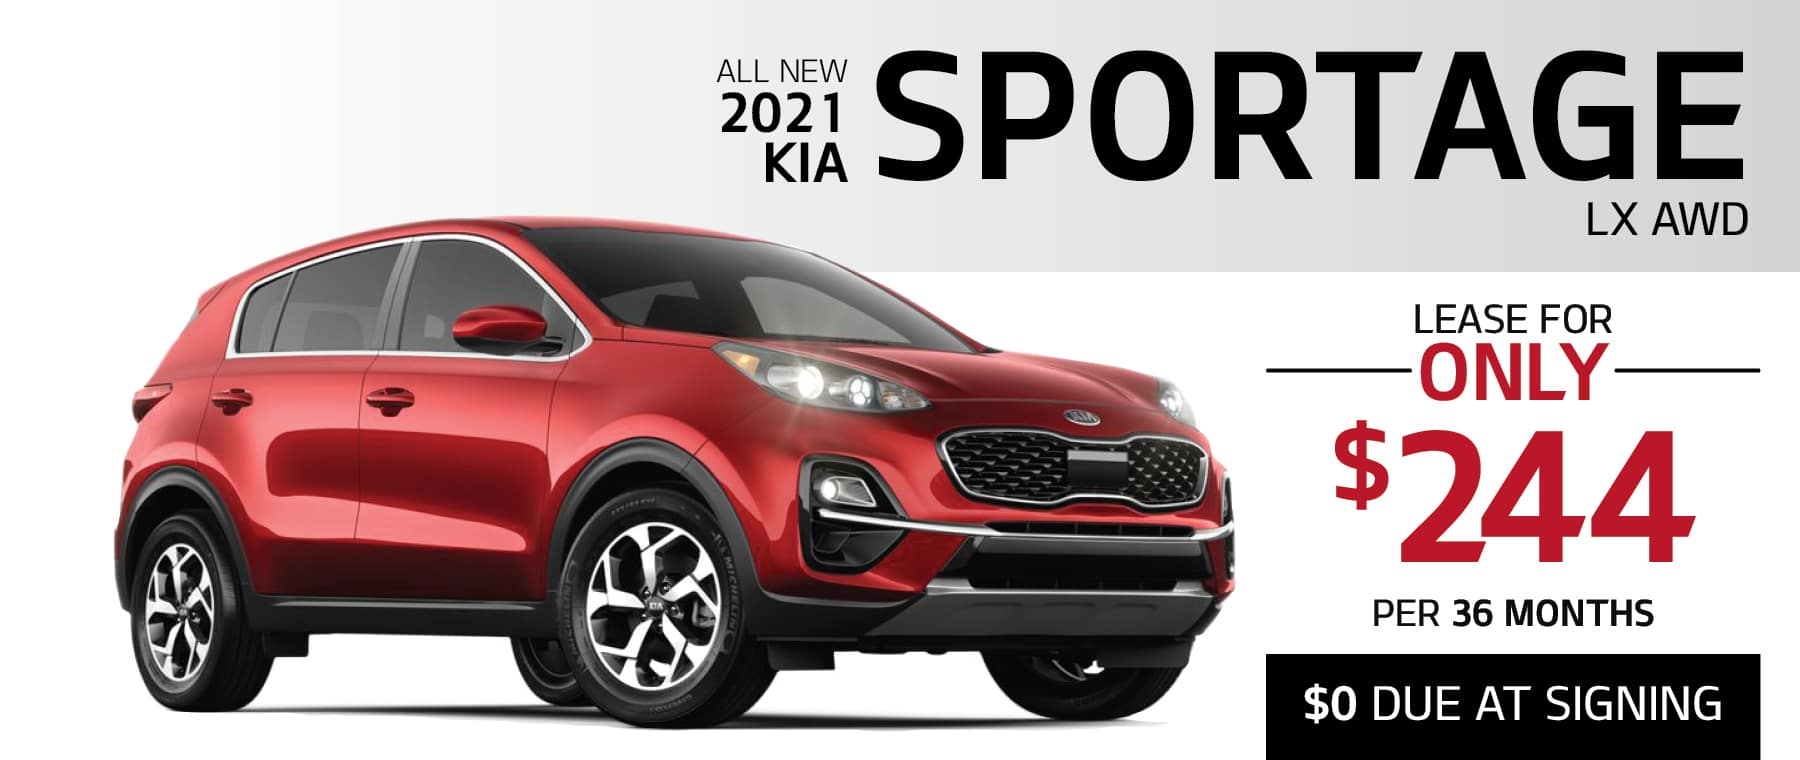 2021 Kia Sportage LX AWD lease for $244 per month with $0 due at signing at Smail Kia